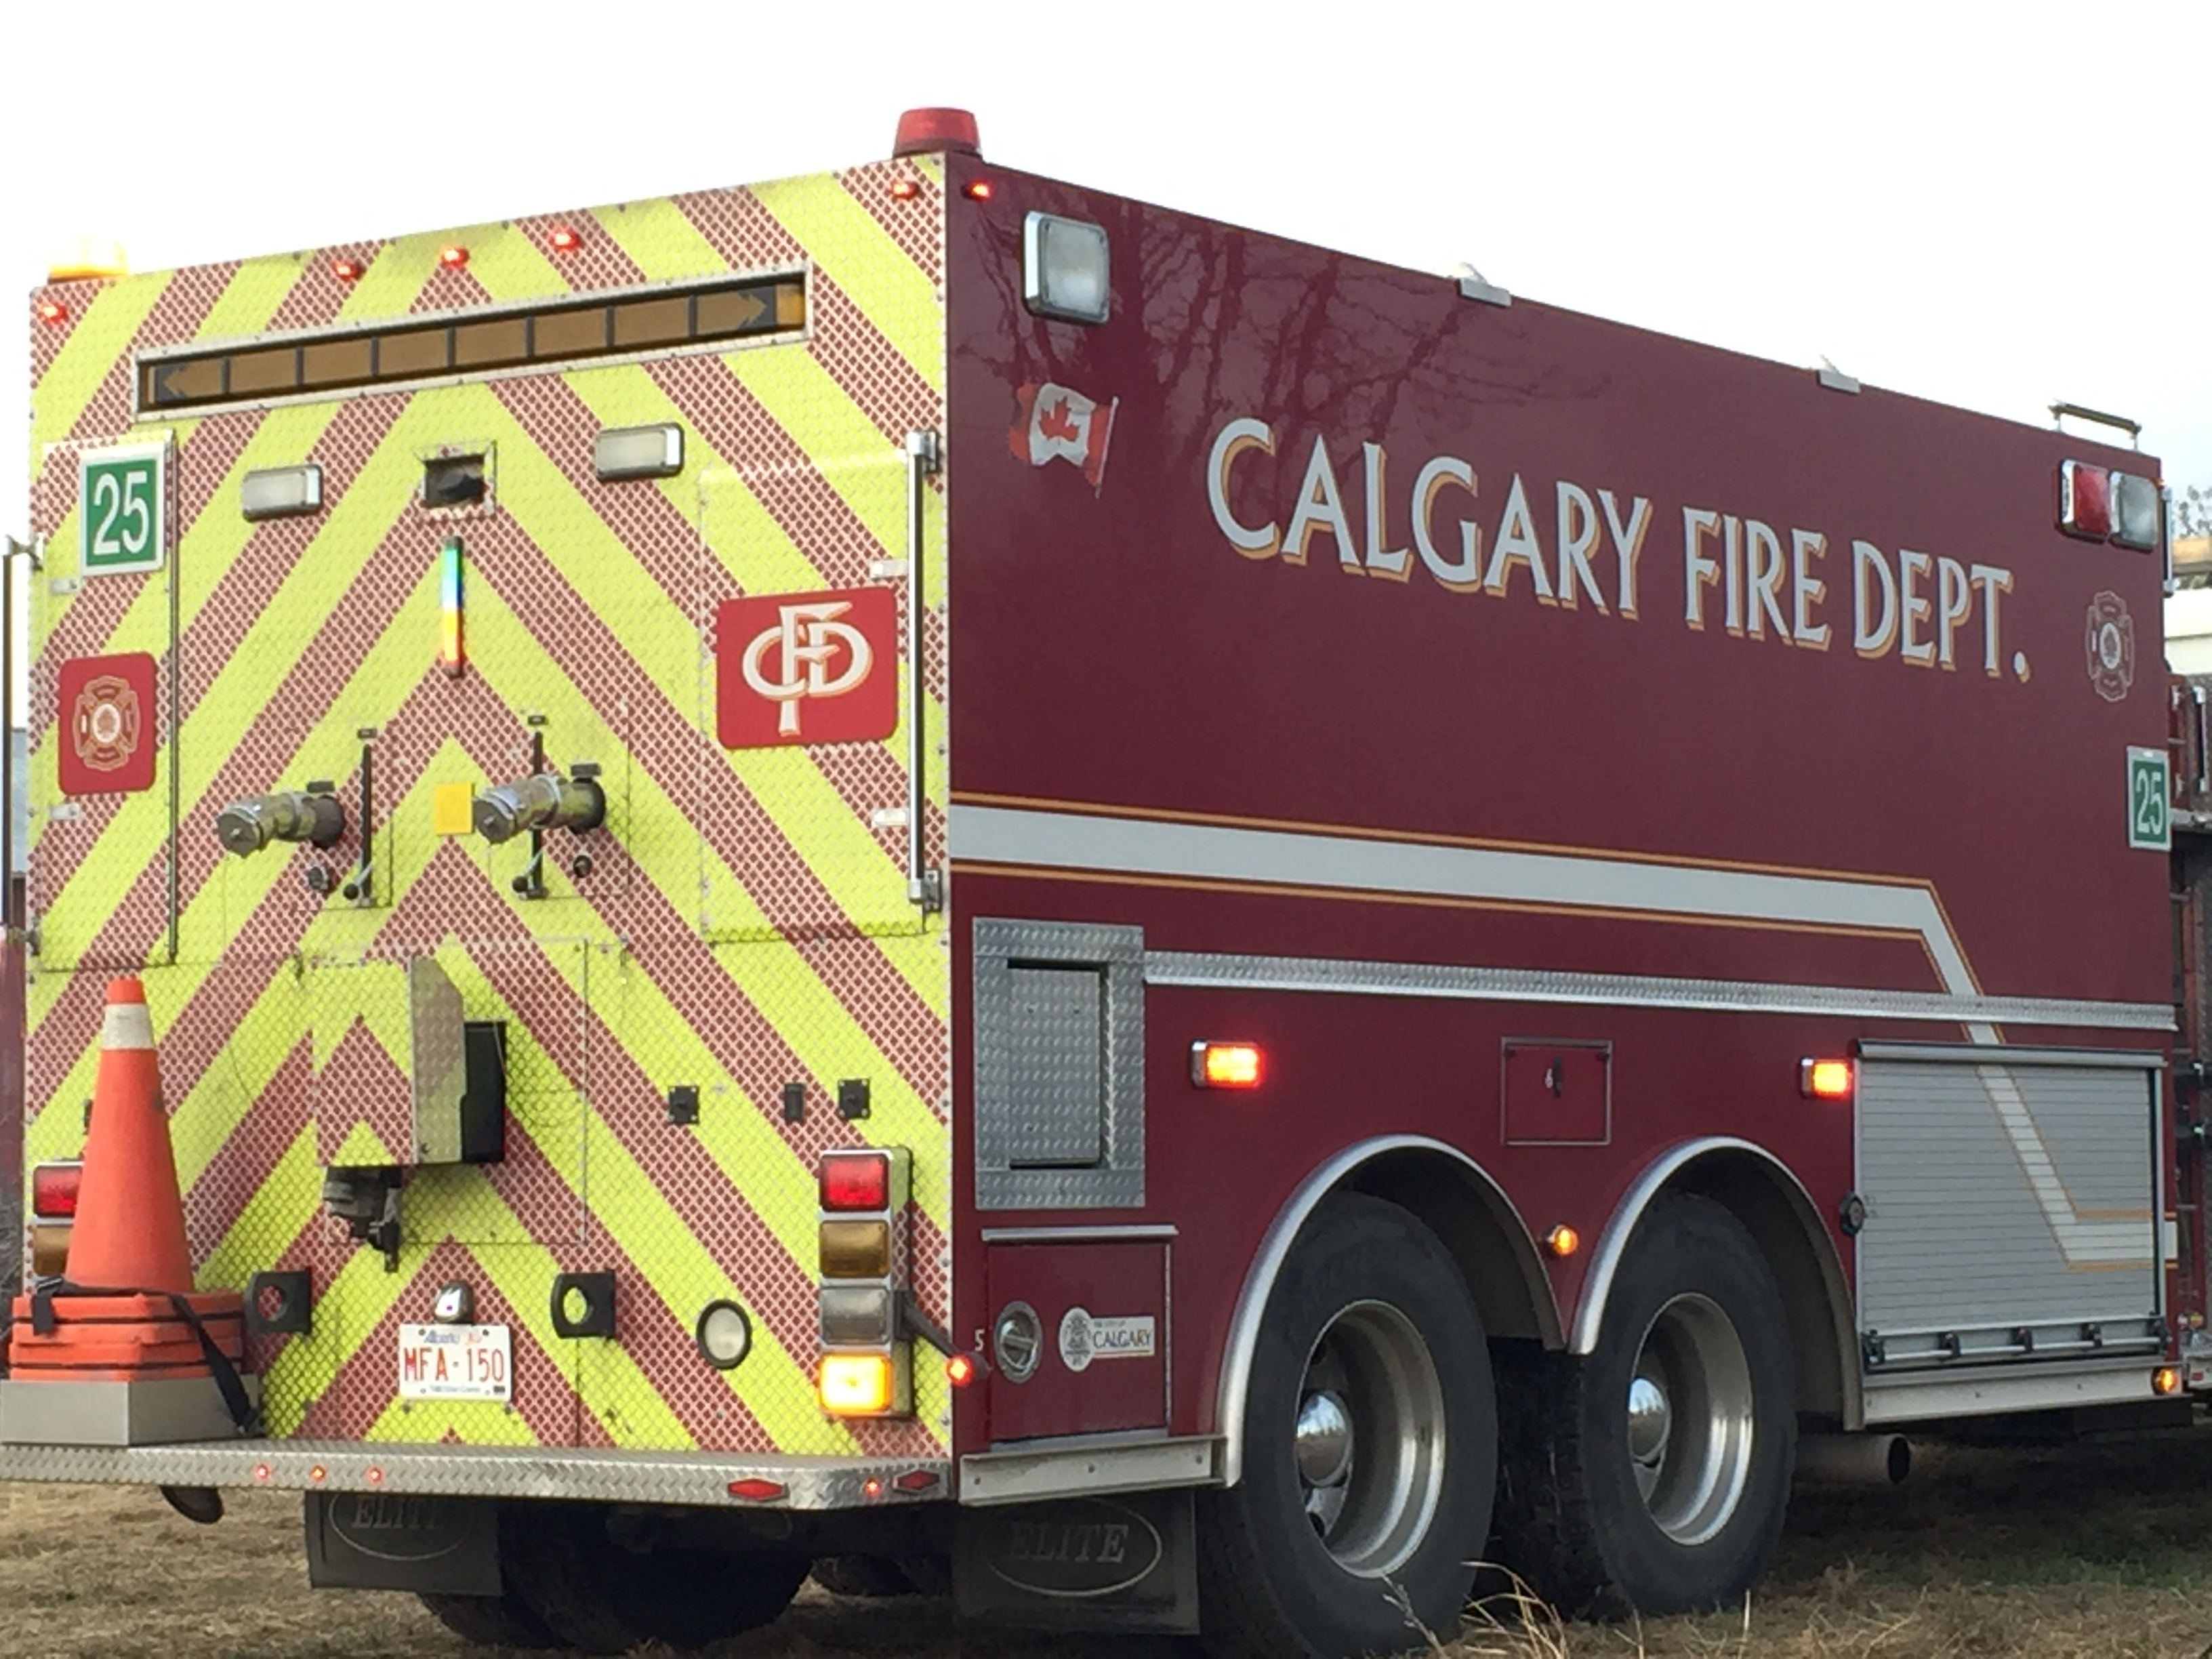 Crews are mopping up after a blaze at a southeast pub.